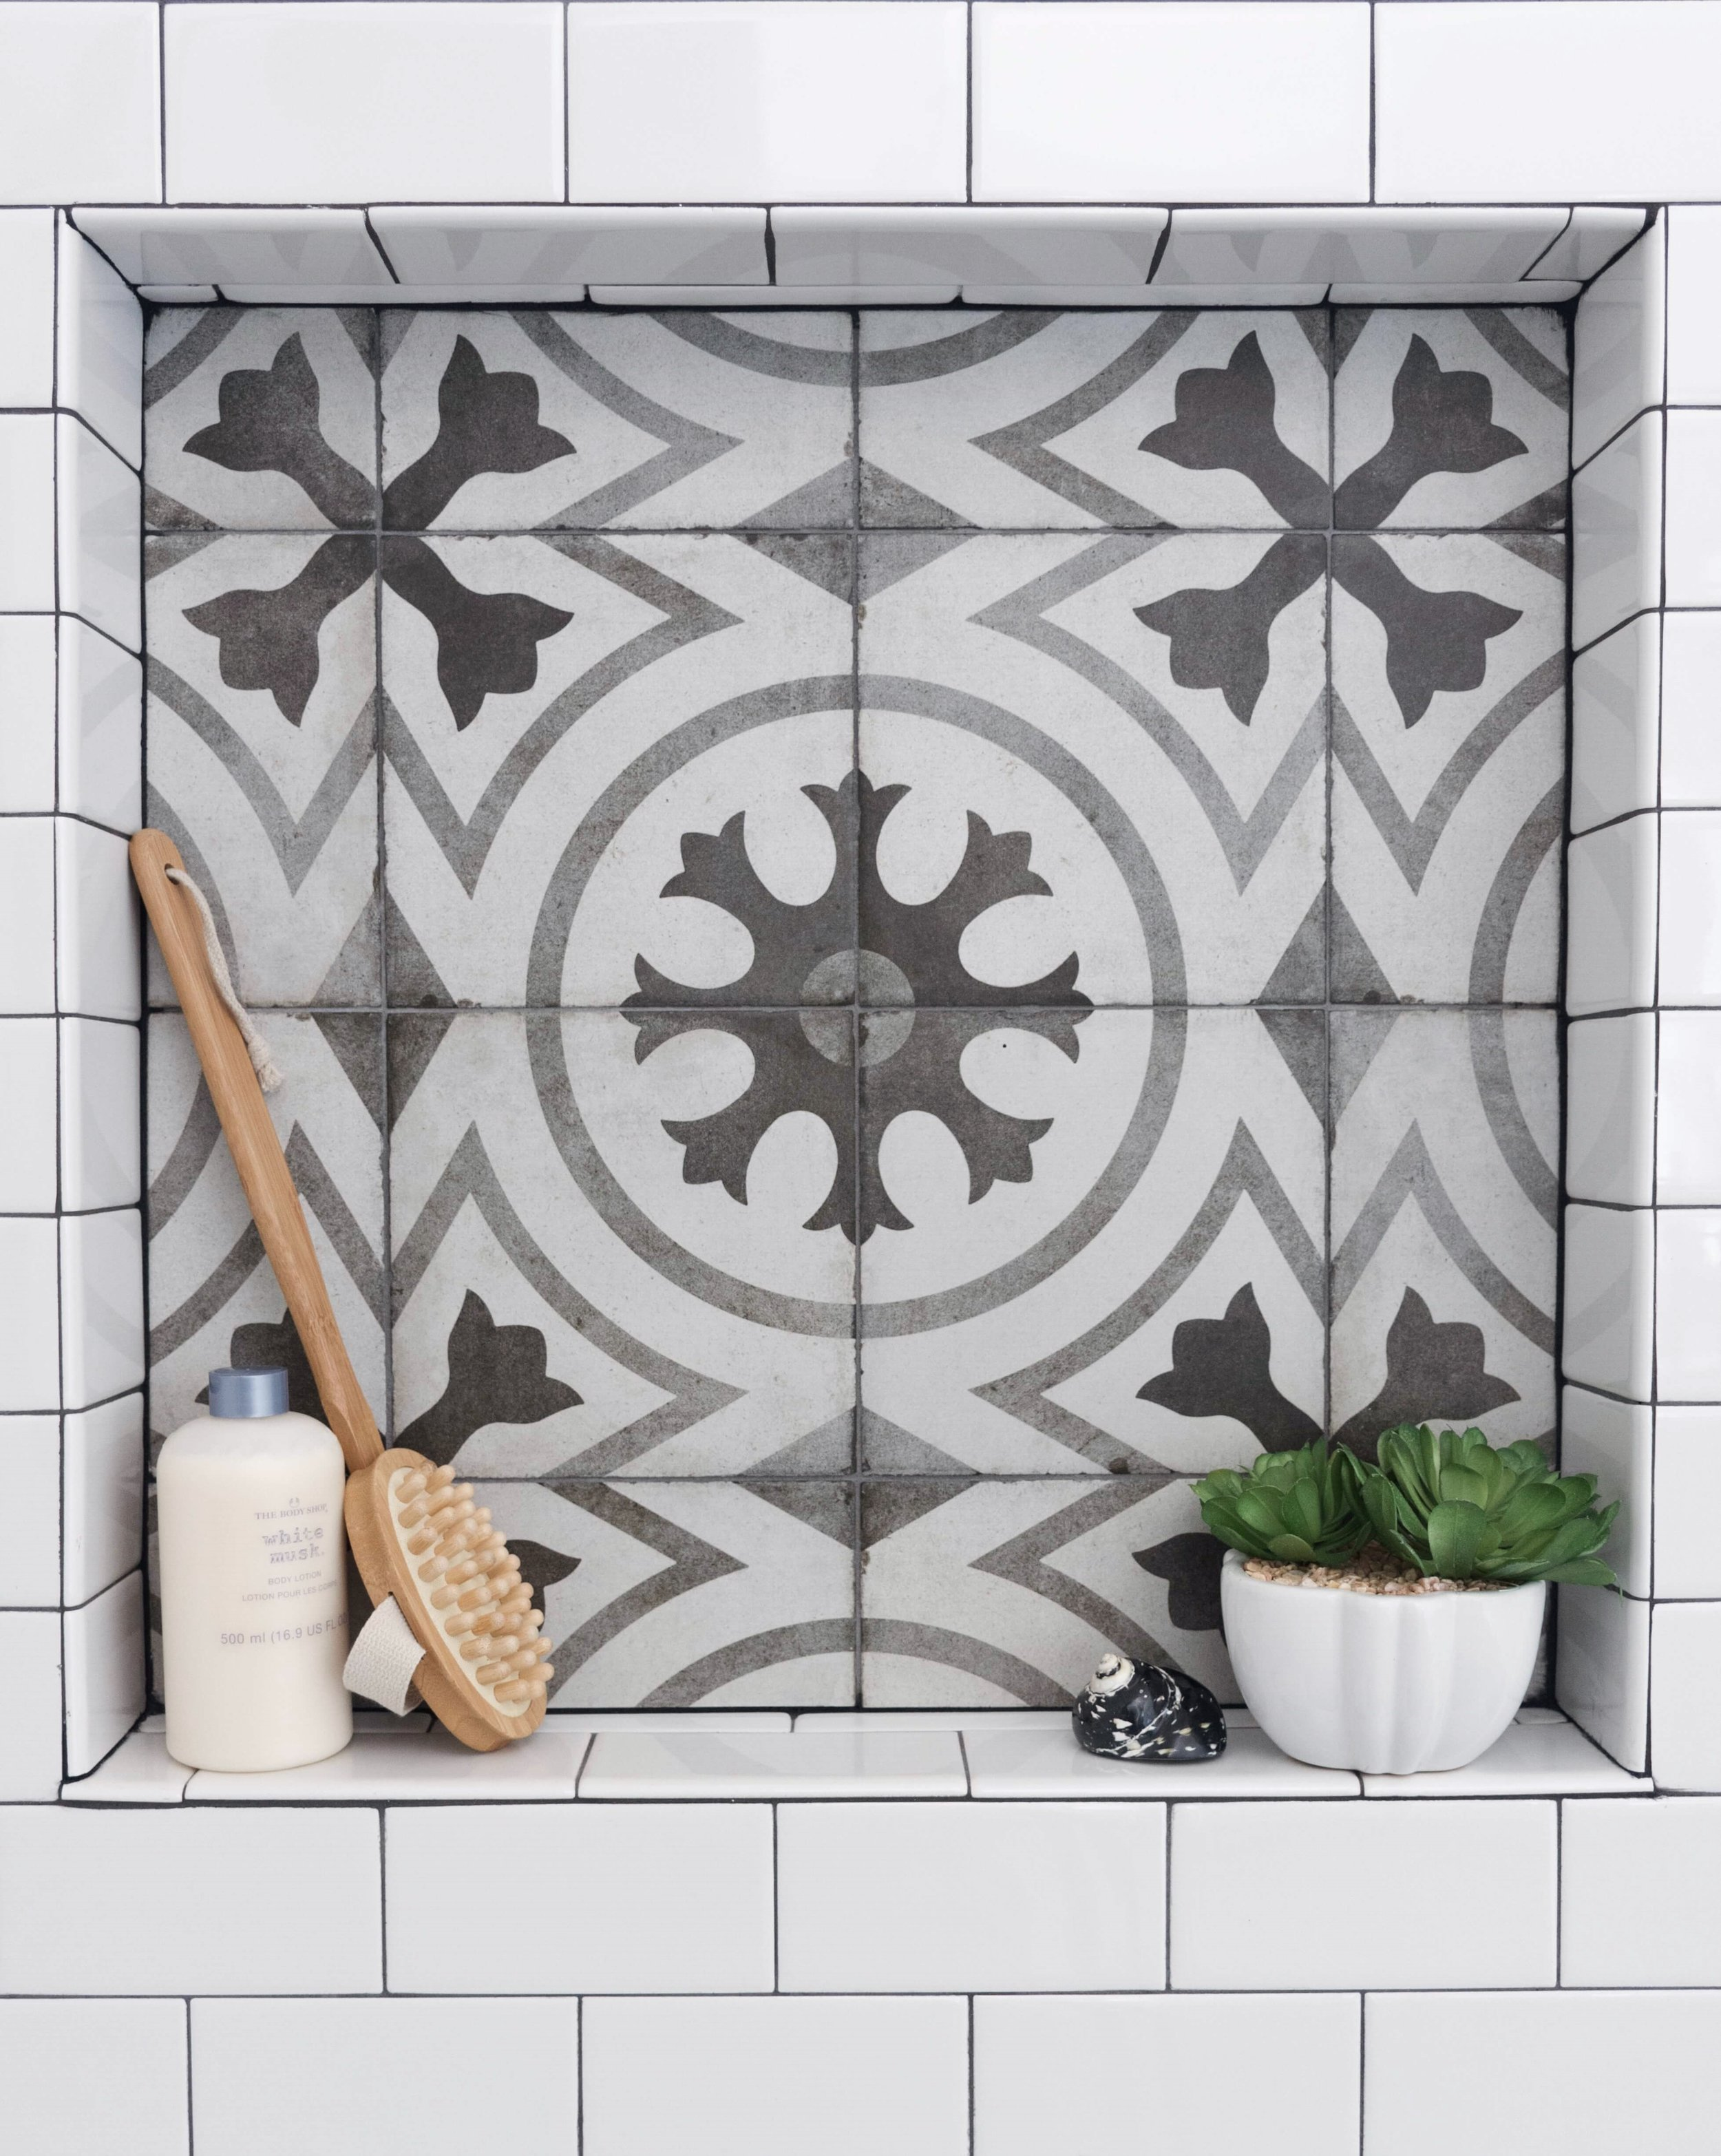 BEFORE AND AFTER - Master bathroom remodel, new shower with cement look tile shampoo niche, white subway tile with dark grout | Carla Aston, Designer | Charles Behrend, Photographer #cementtile #shampooniche #showerniche #subwaytile #bathroomremodel